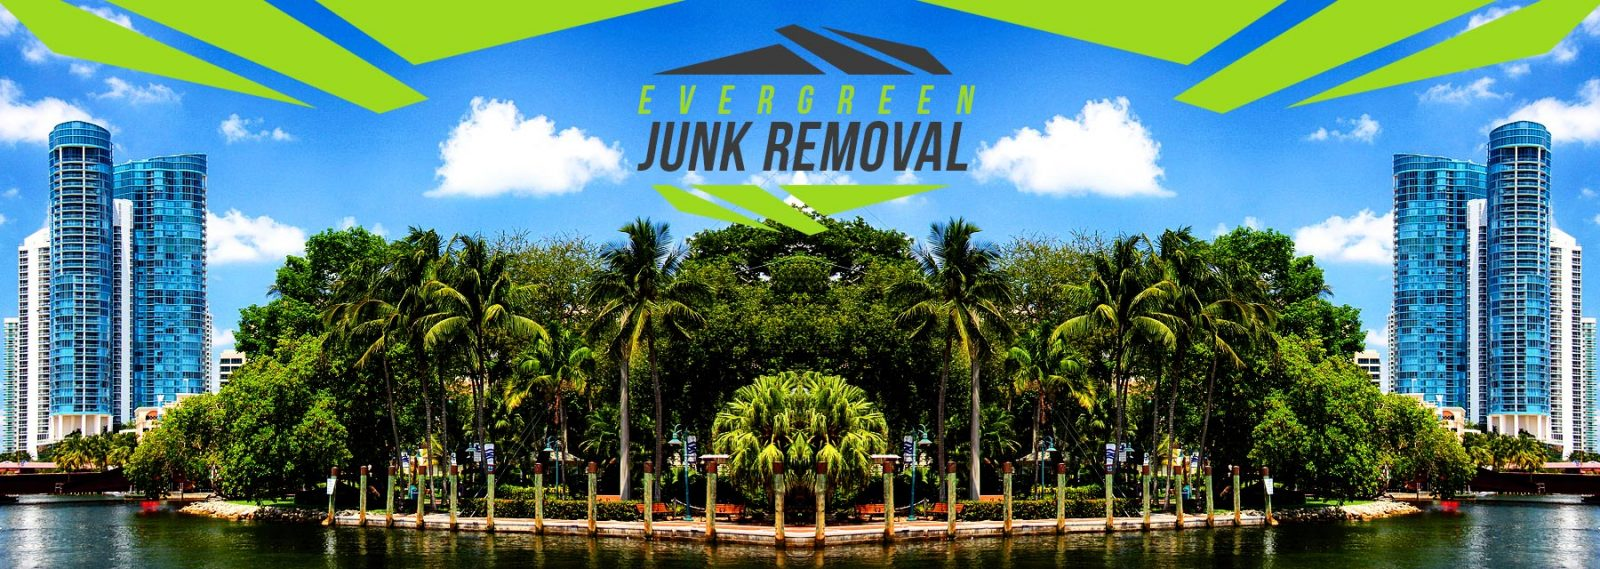 Lauderhill Hot Tub Removal Company